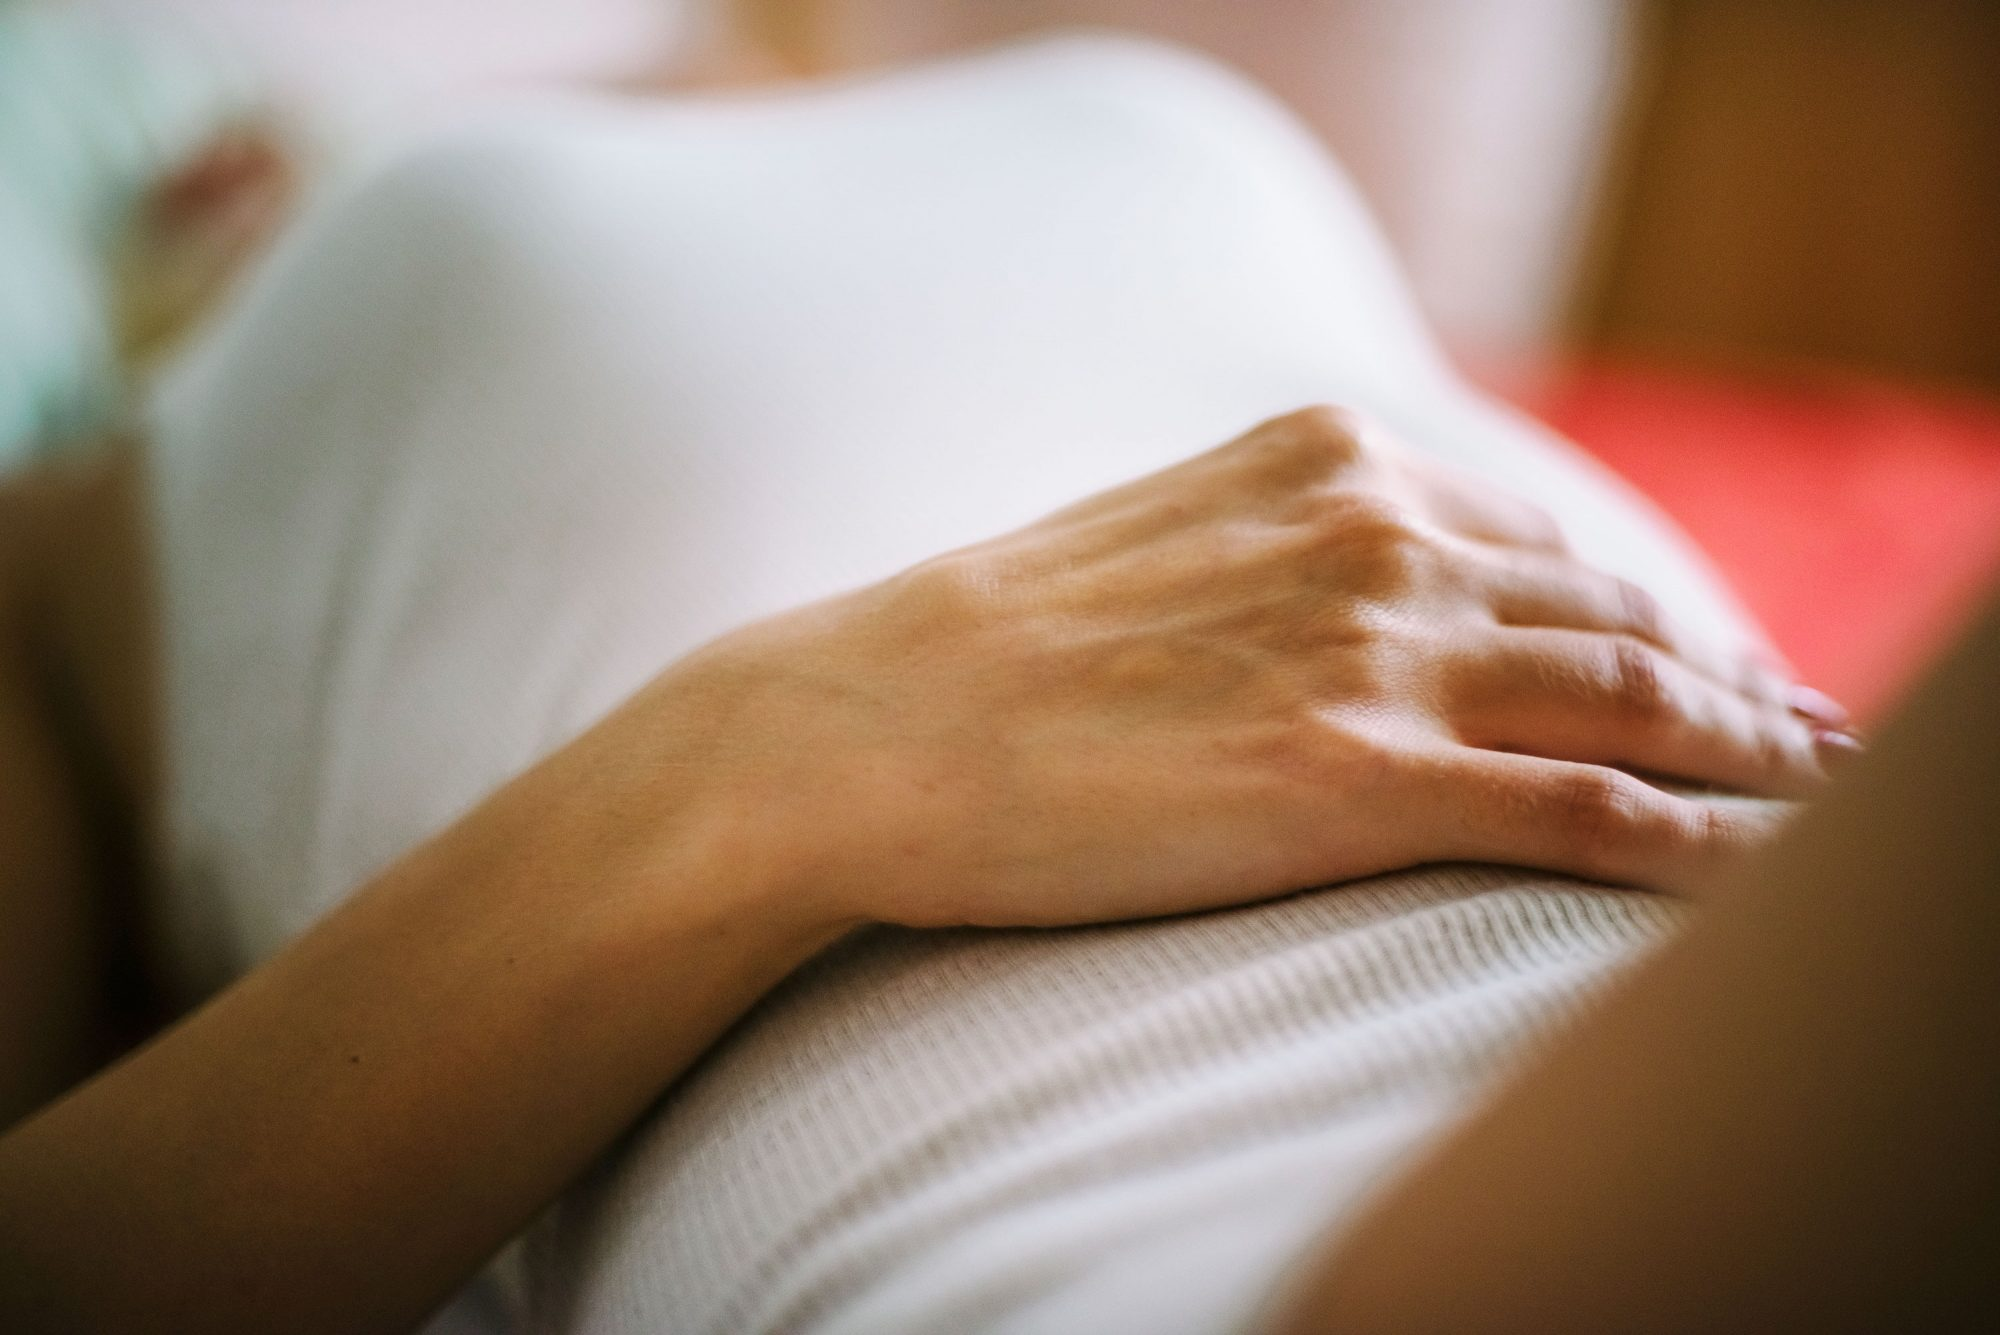 The Best Foods for Cramps, Fatigue, Bloating, and More Period Symptoms